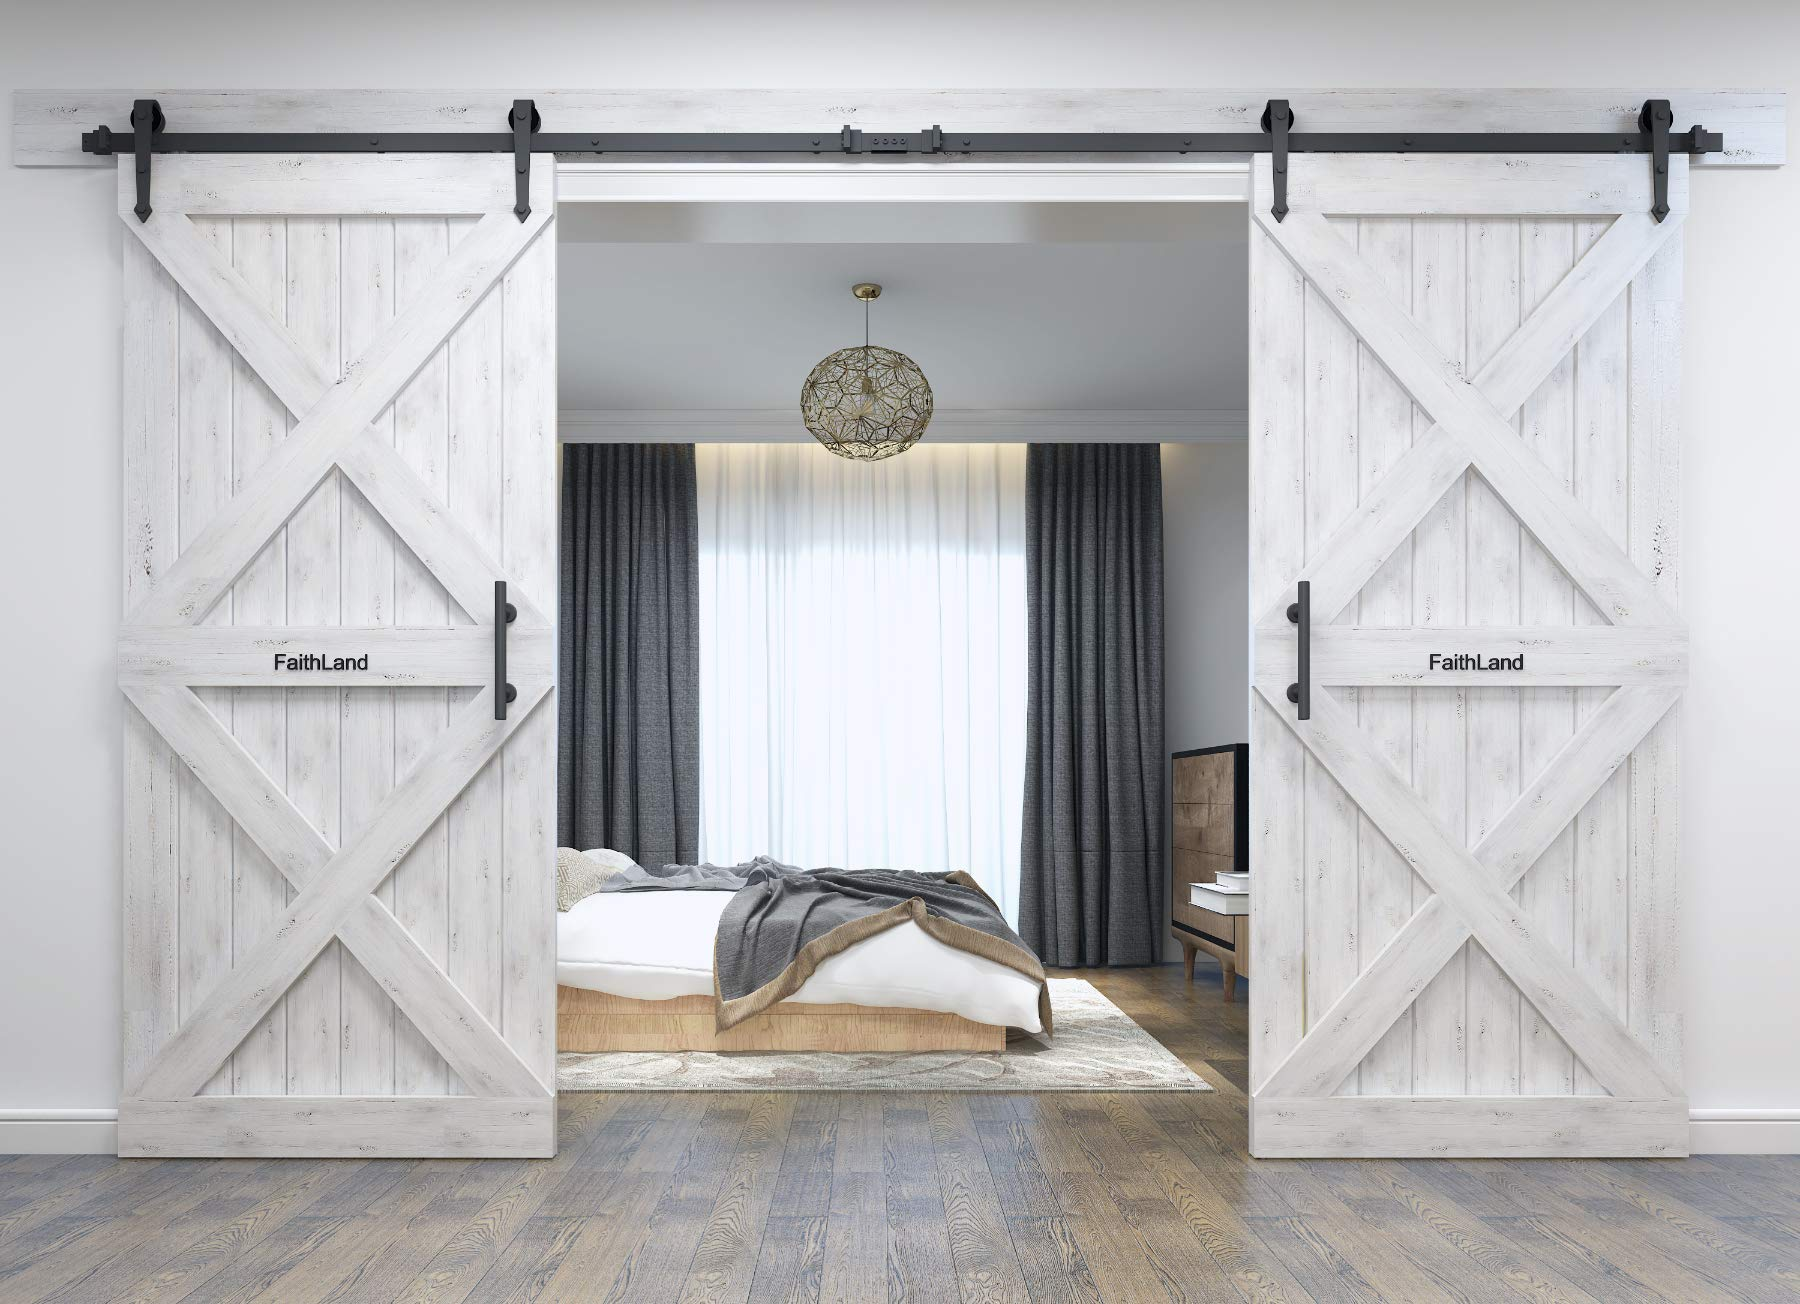 FaithLand 12FT Double Sliding Barn Door Hardware Track Kit for Wood Door Closet - 12 Foot Rail Kit Double Door - Heavy Duty - Ultra Smooth Quiet - Seamless Rail connector - Tested Beyond 120,000 Rolls by FaithLand (Image #8)